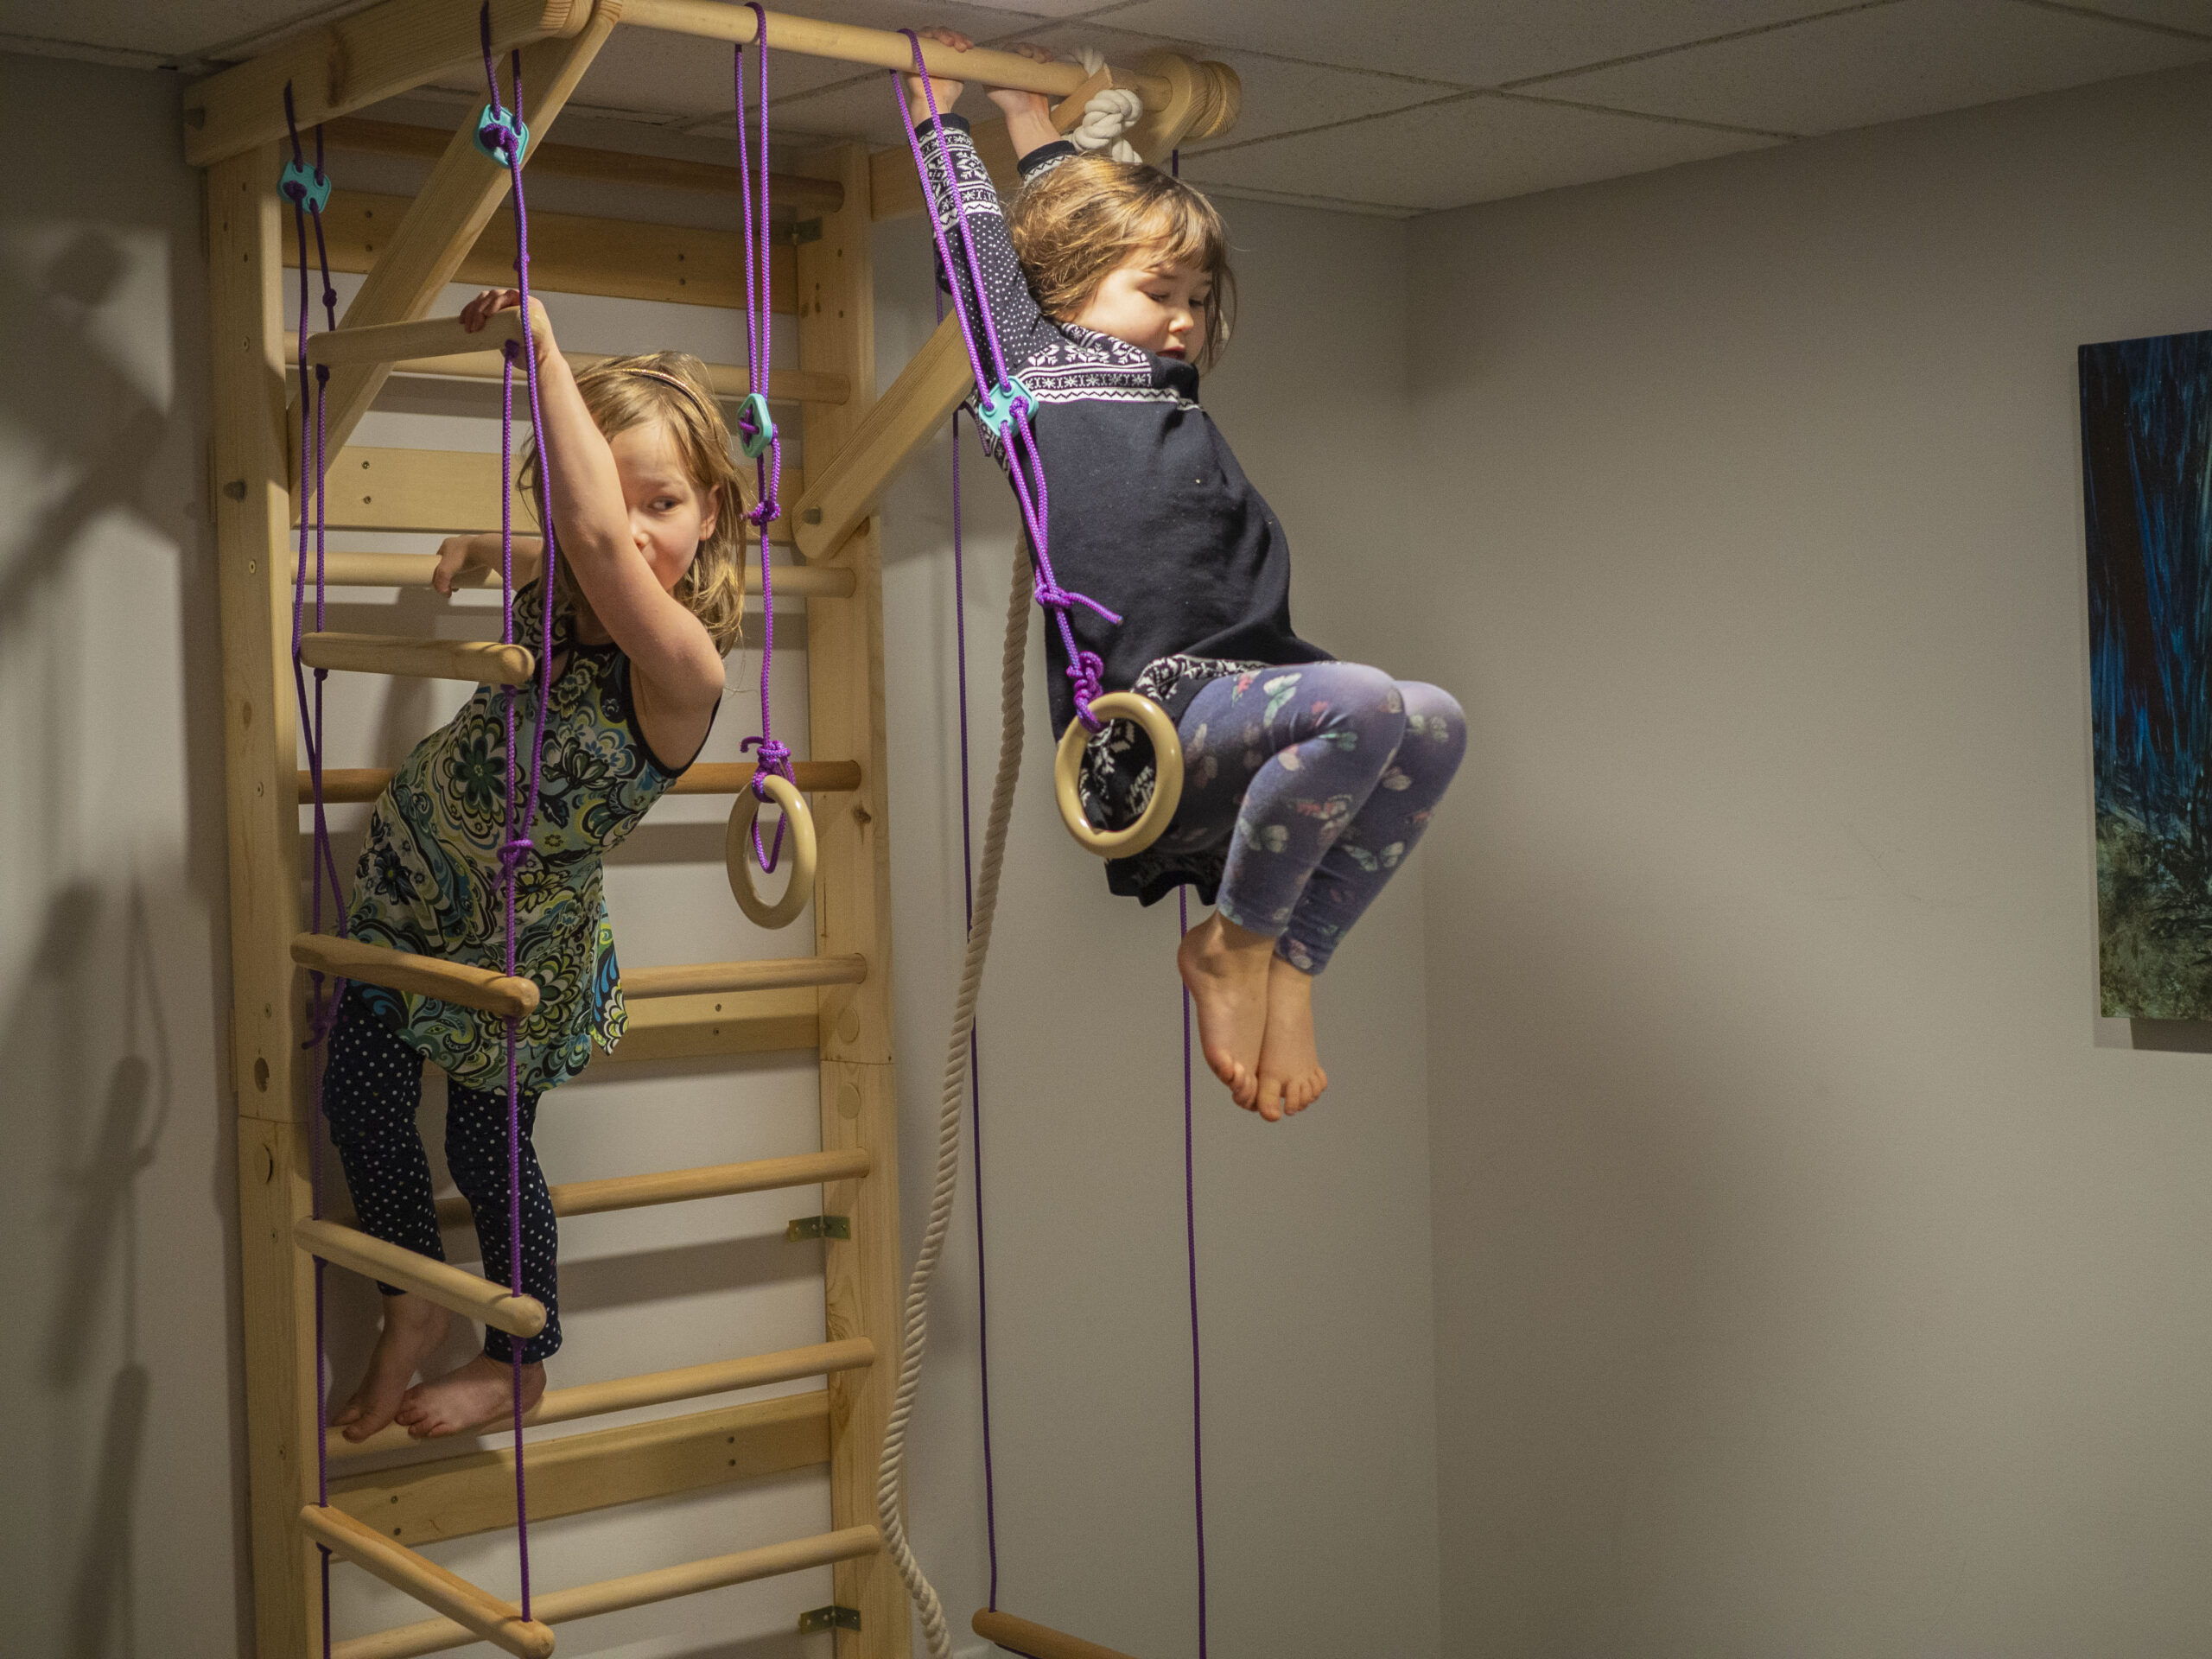 Indoor Playground for Kids at home